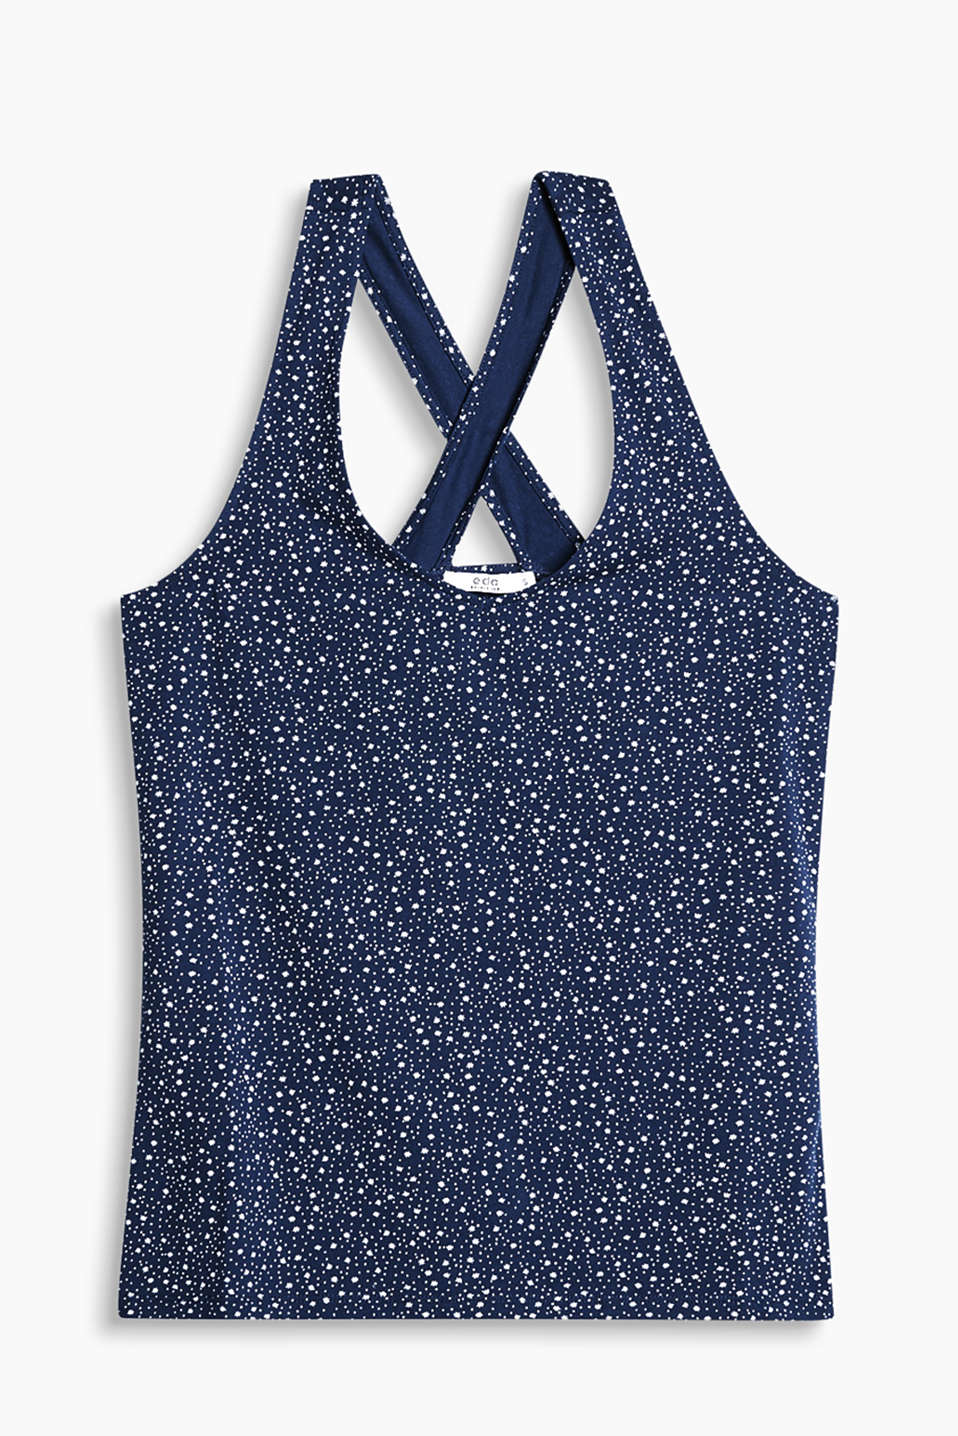 Sleeveless top with a minimalist print and cross-over straps